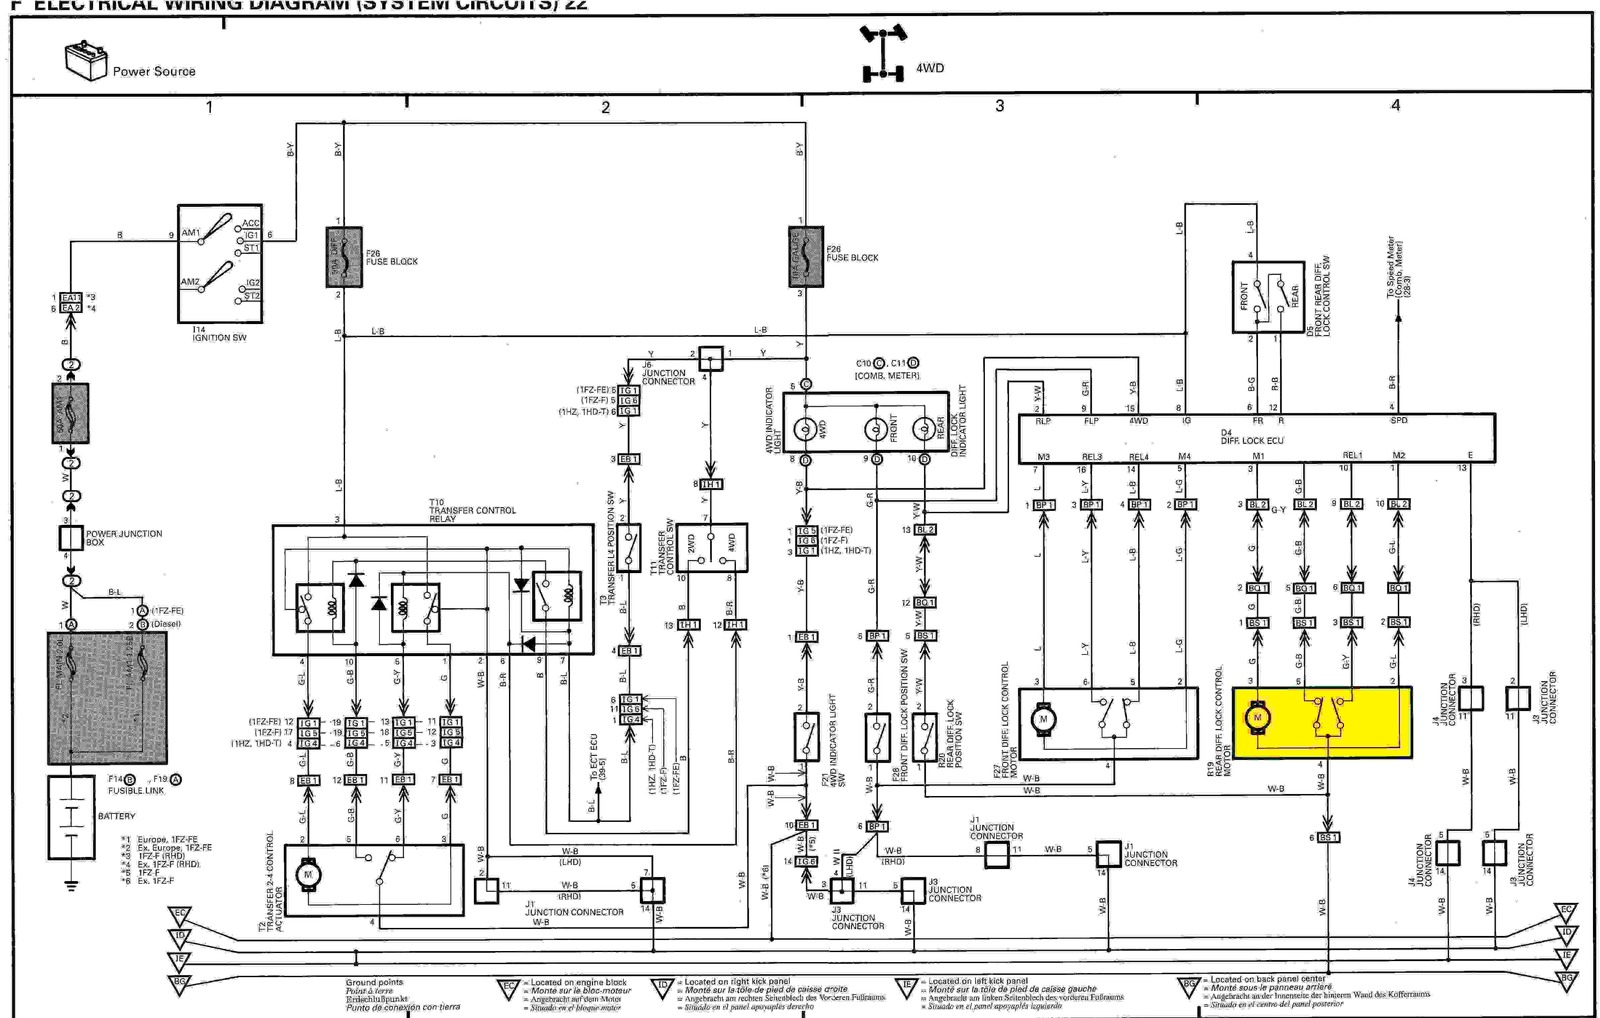 100 series landcruiser wiring diagram toyota 1jz gte rear diff lock actuator no power getting to it land